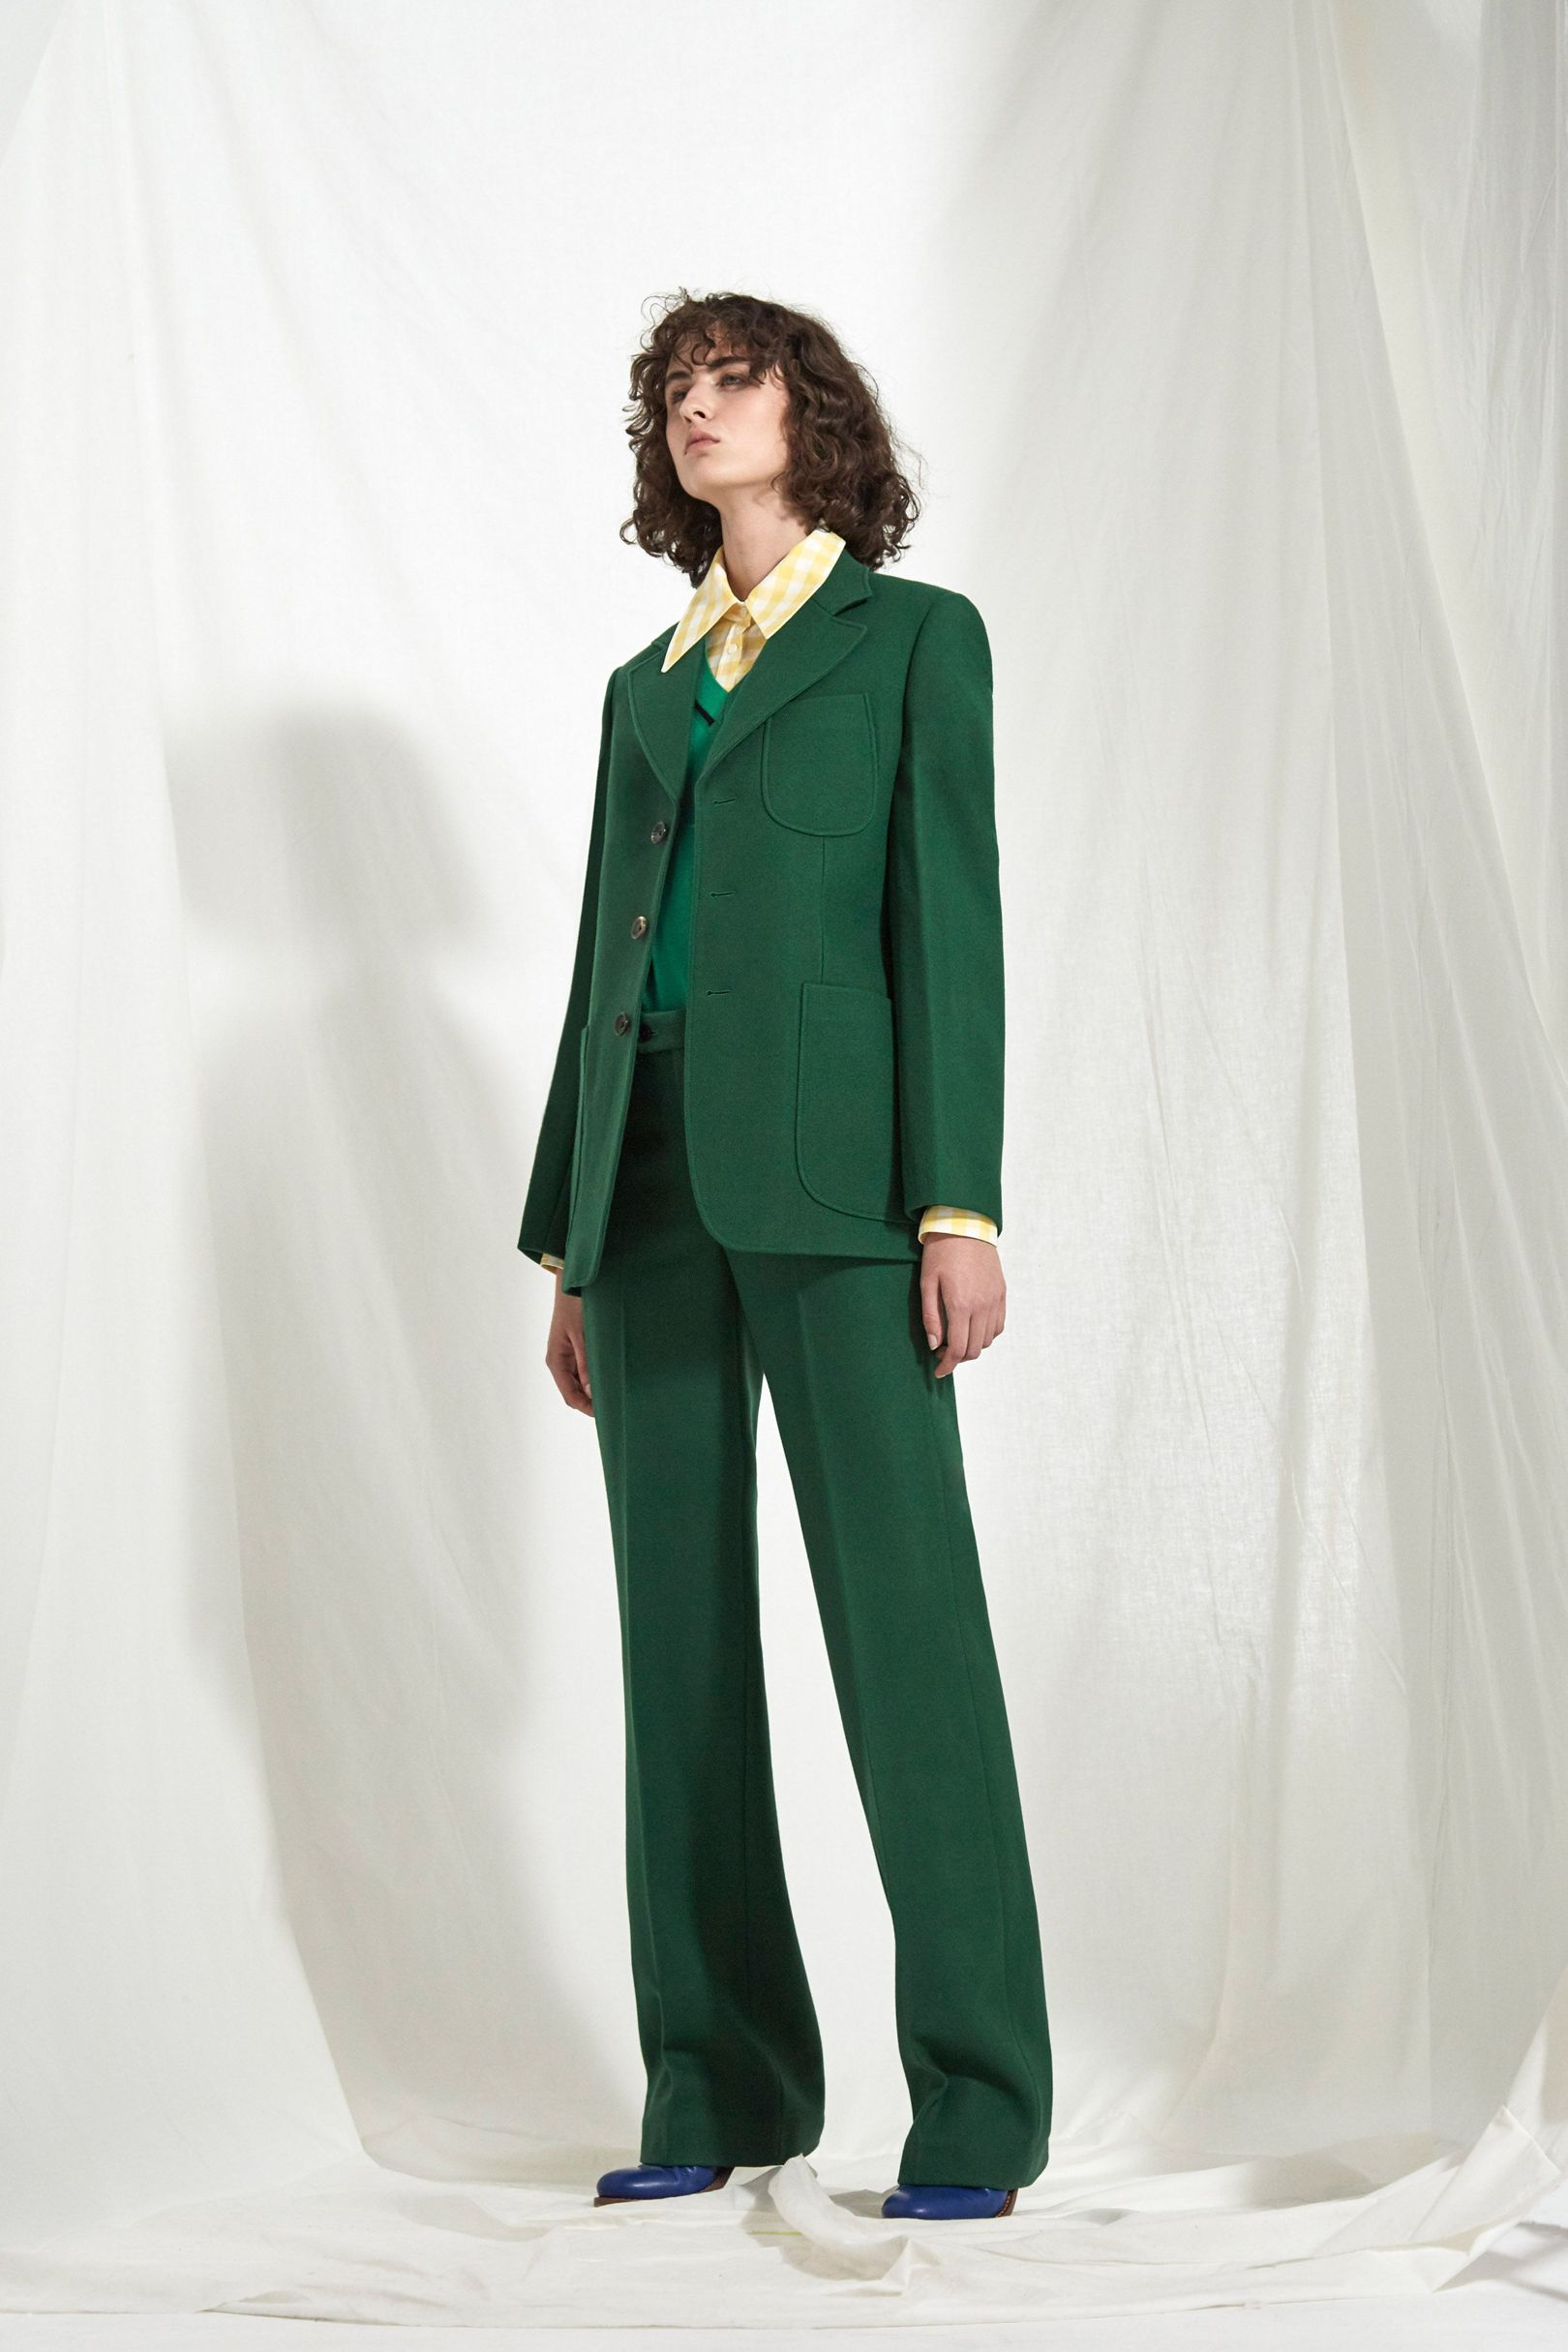 Green fashion shot from Joseph, Resort 2018 collection